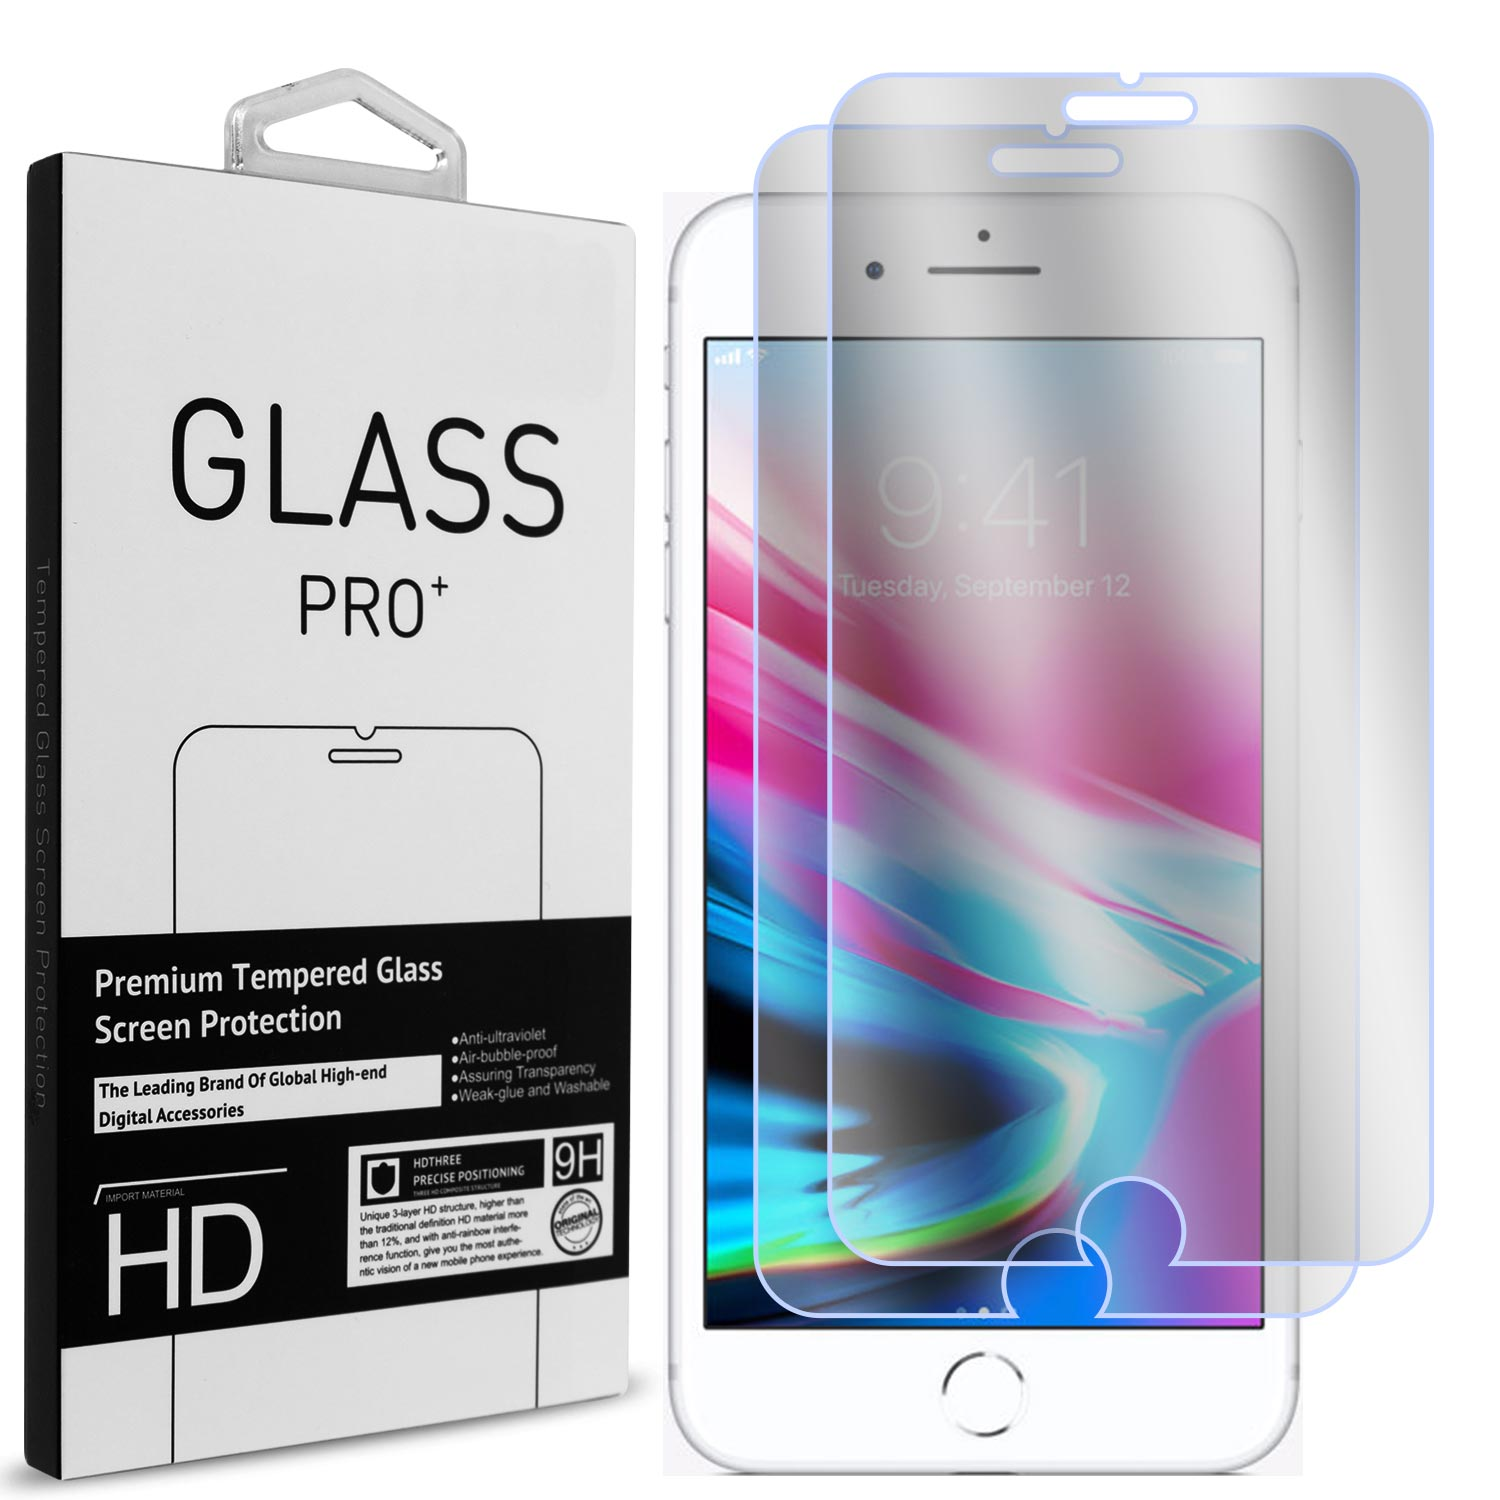 2 Pack of CoverON Apple iPhone 8 / iPhone 7 Tempered Glass Screen Protectors - Premium Grade 9H Tough - HD Clear